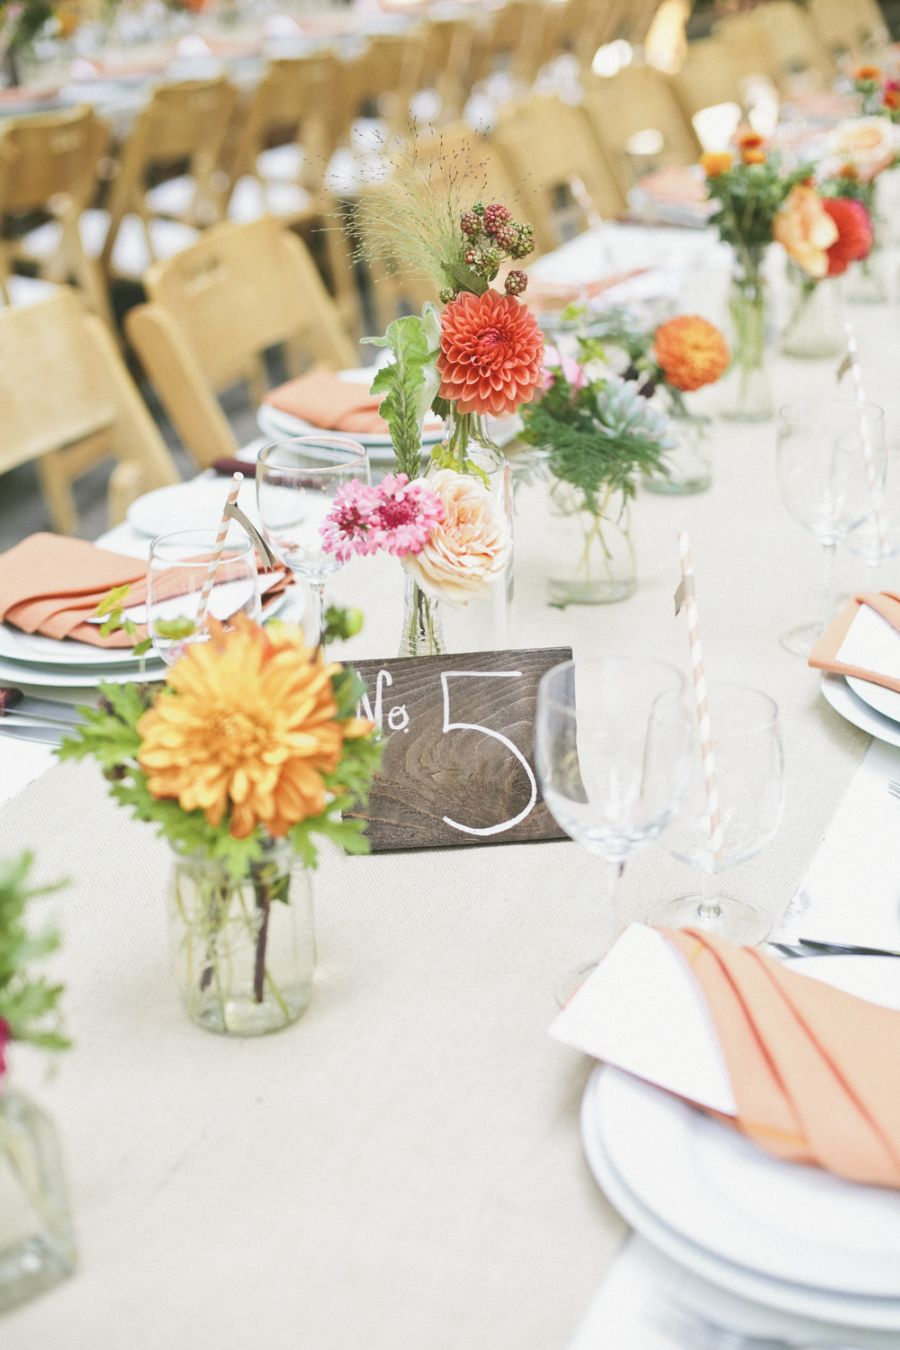 Orange Themed Wedding in Griffith Woods from onelove photography ...